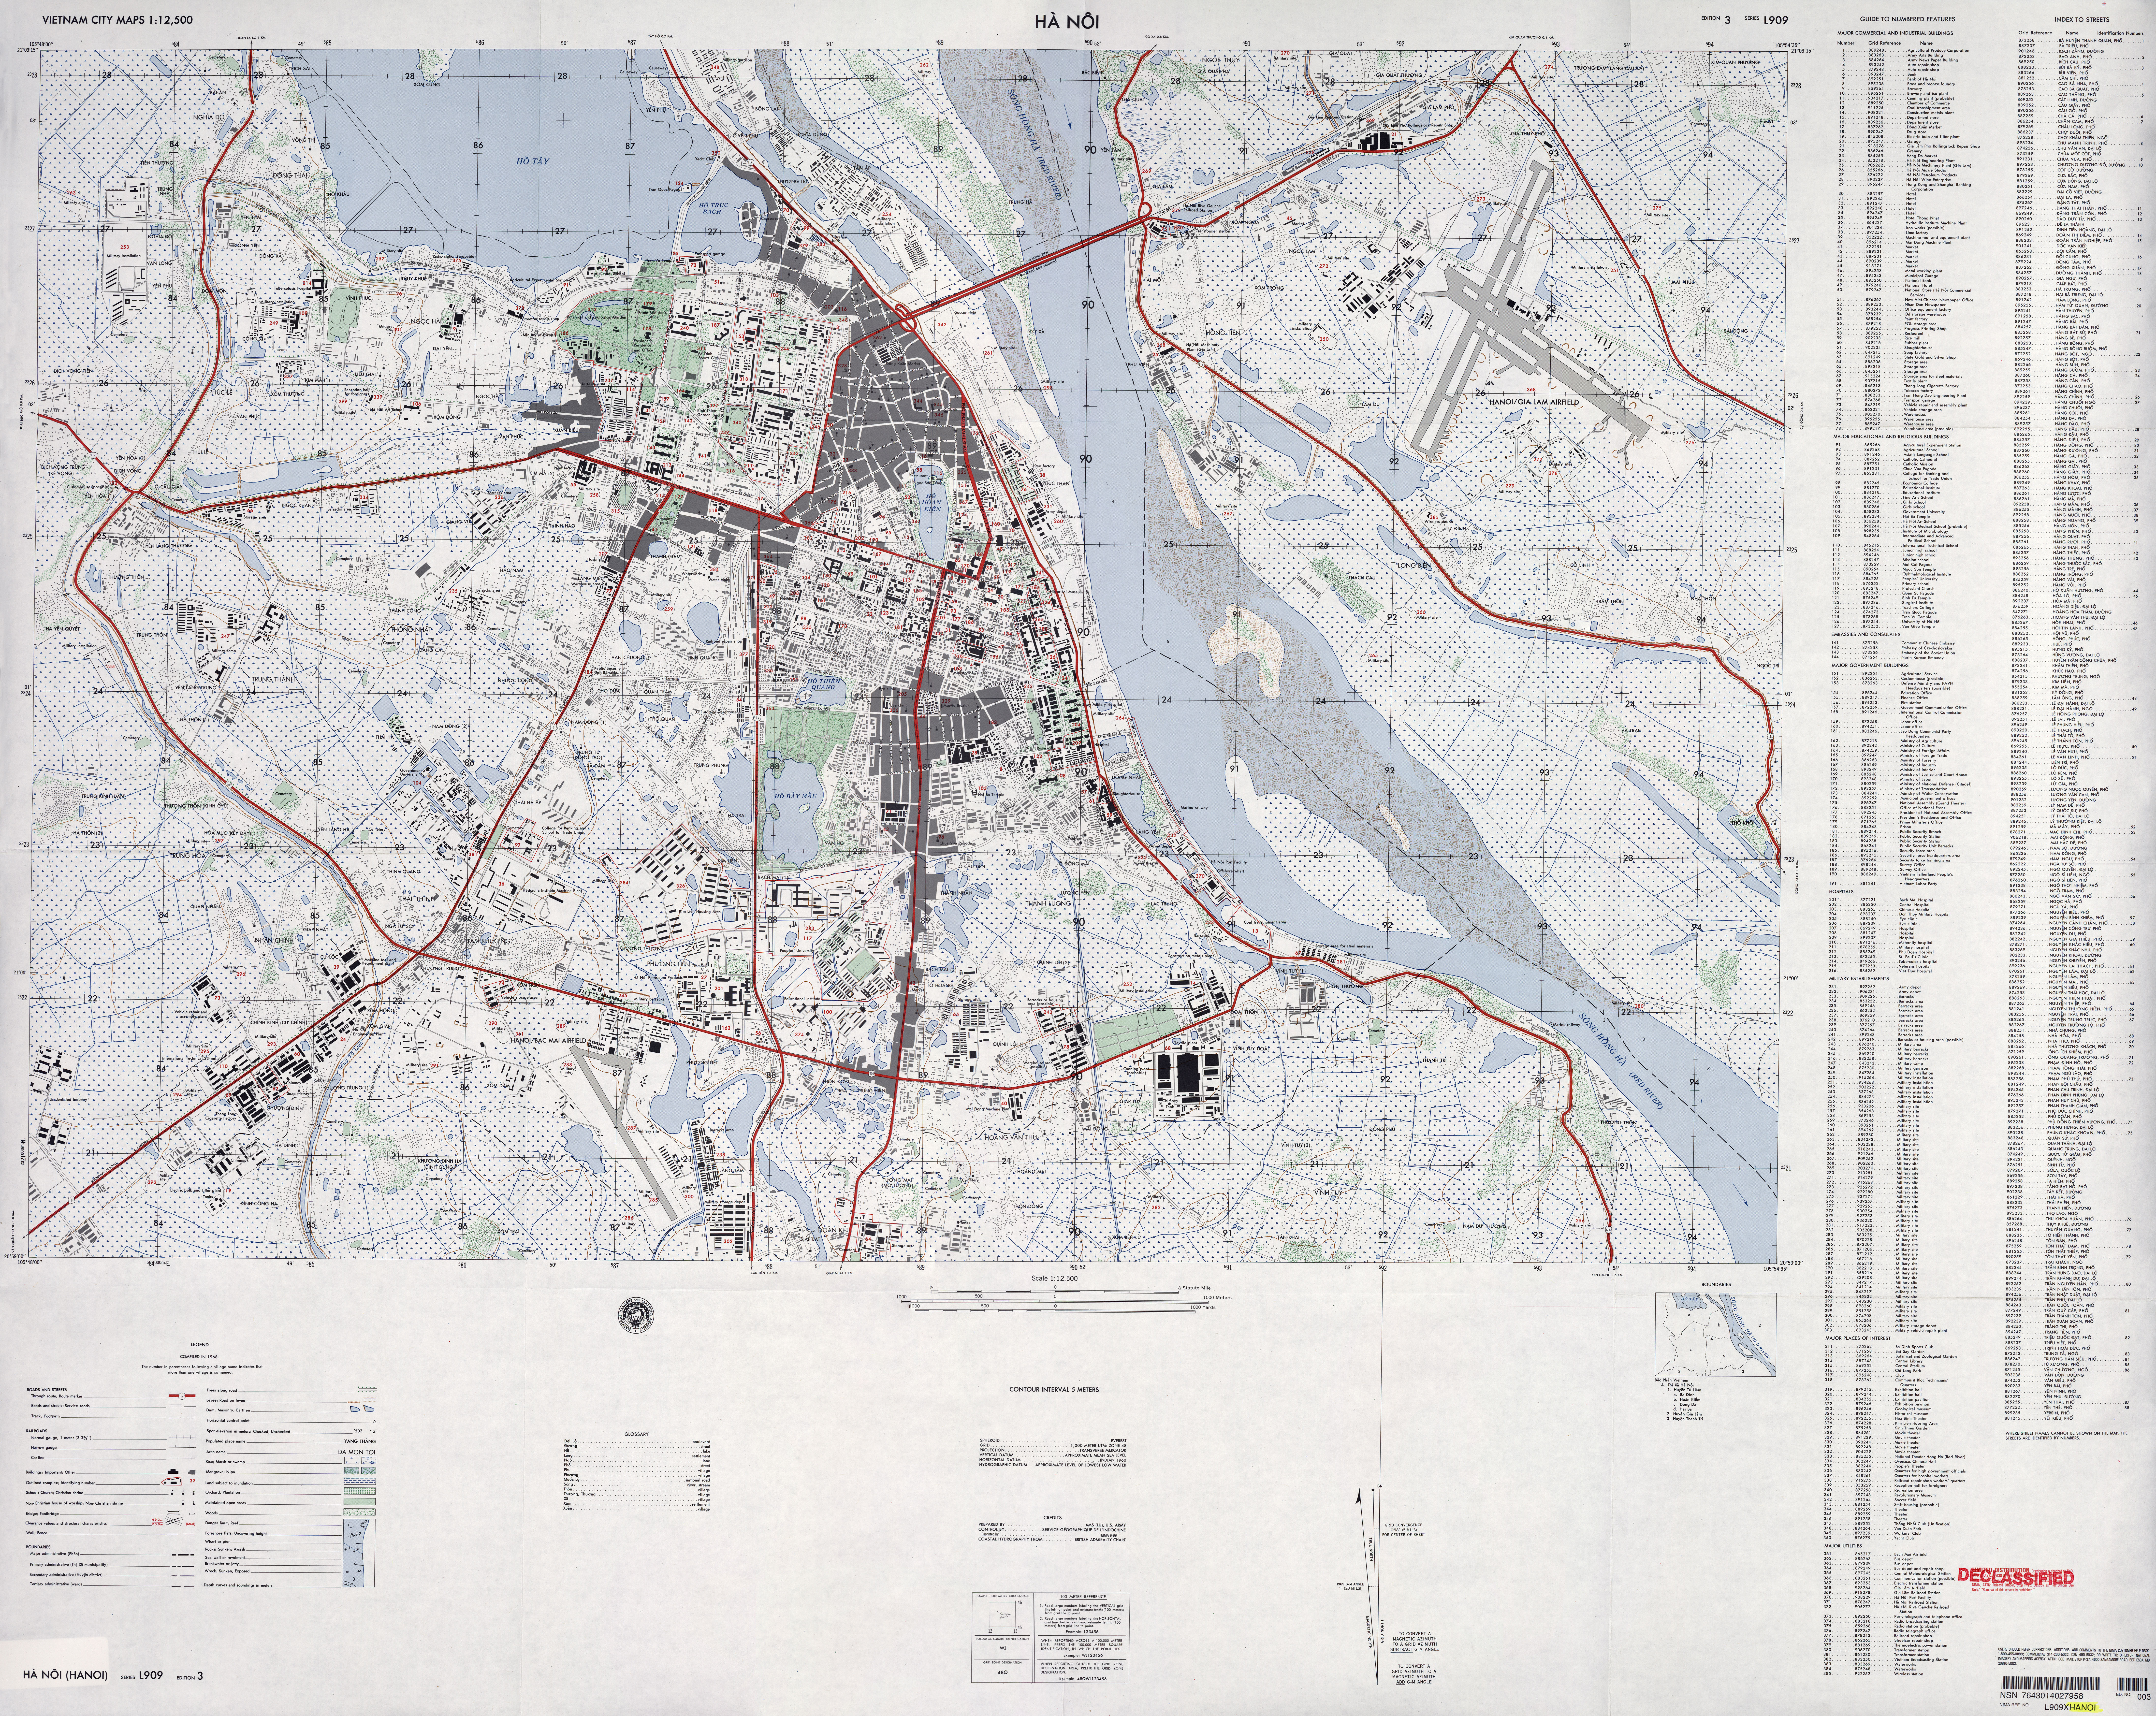 University of Texas - Maps of Vietnam - 366th Fighter Association